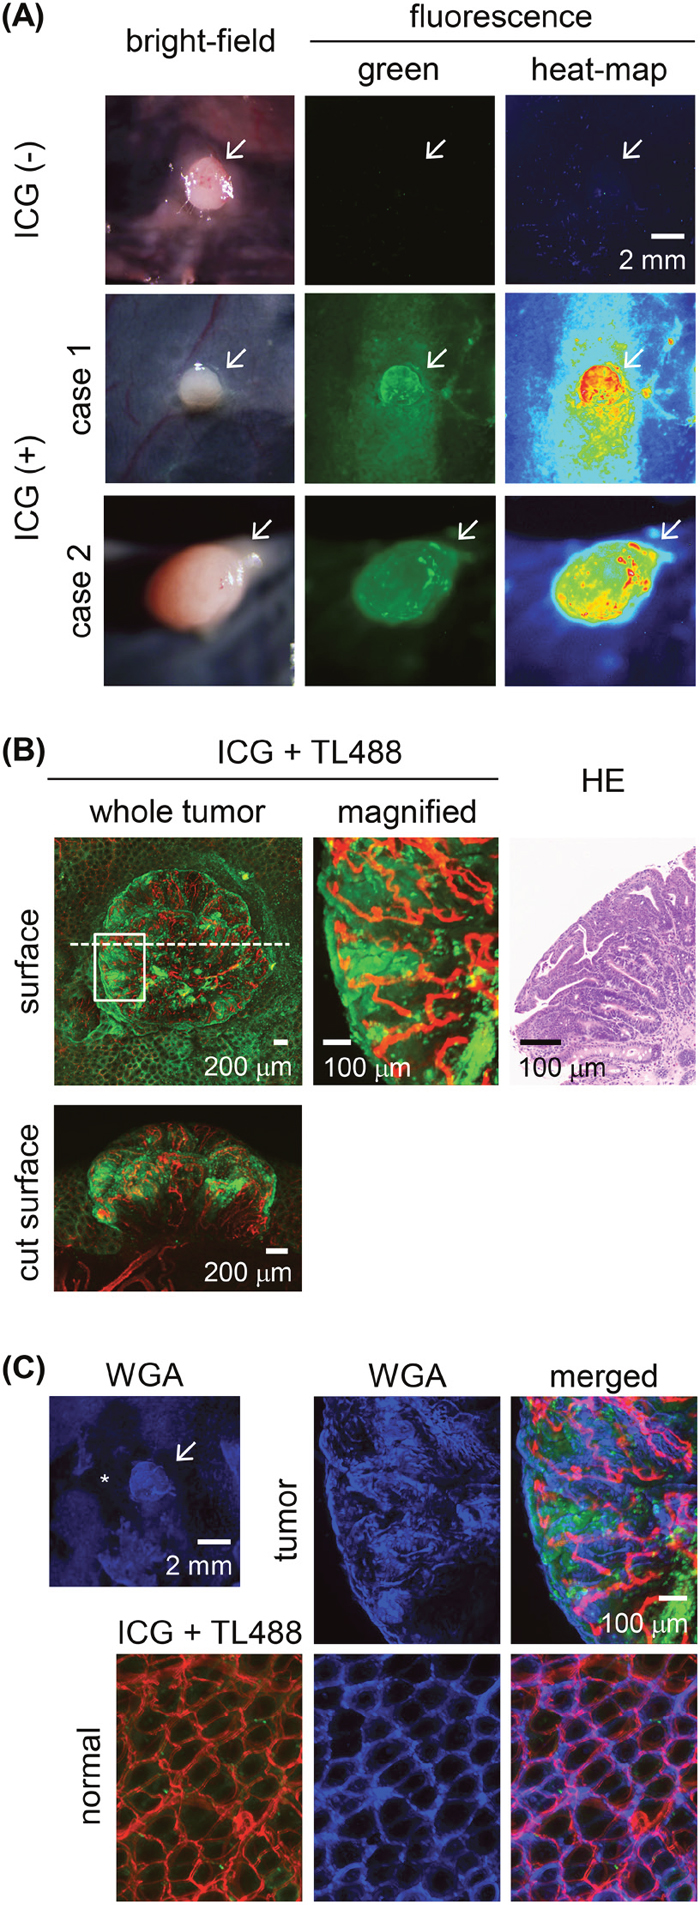 Ex vivo ICG-fluorescence imaging of colon tumors in azoxymethane (AOM)-induced colon carcinogenesis in rats after a 30-min ICG enema.